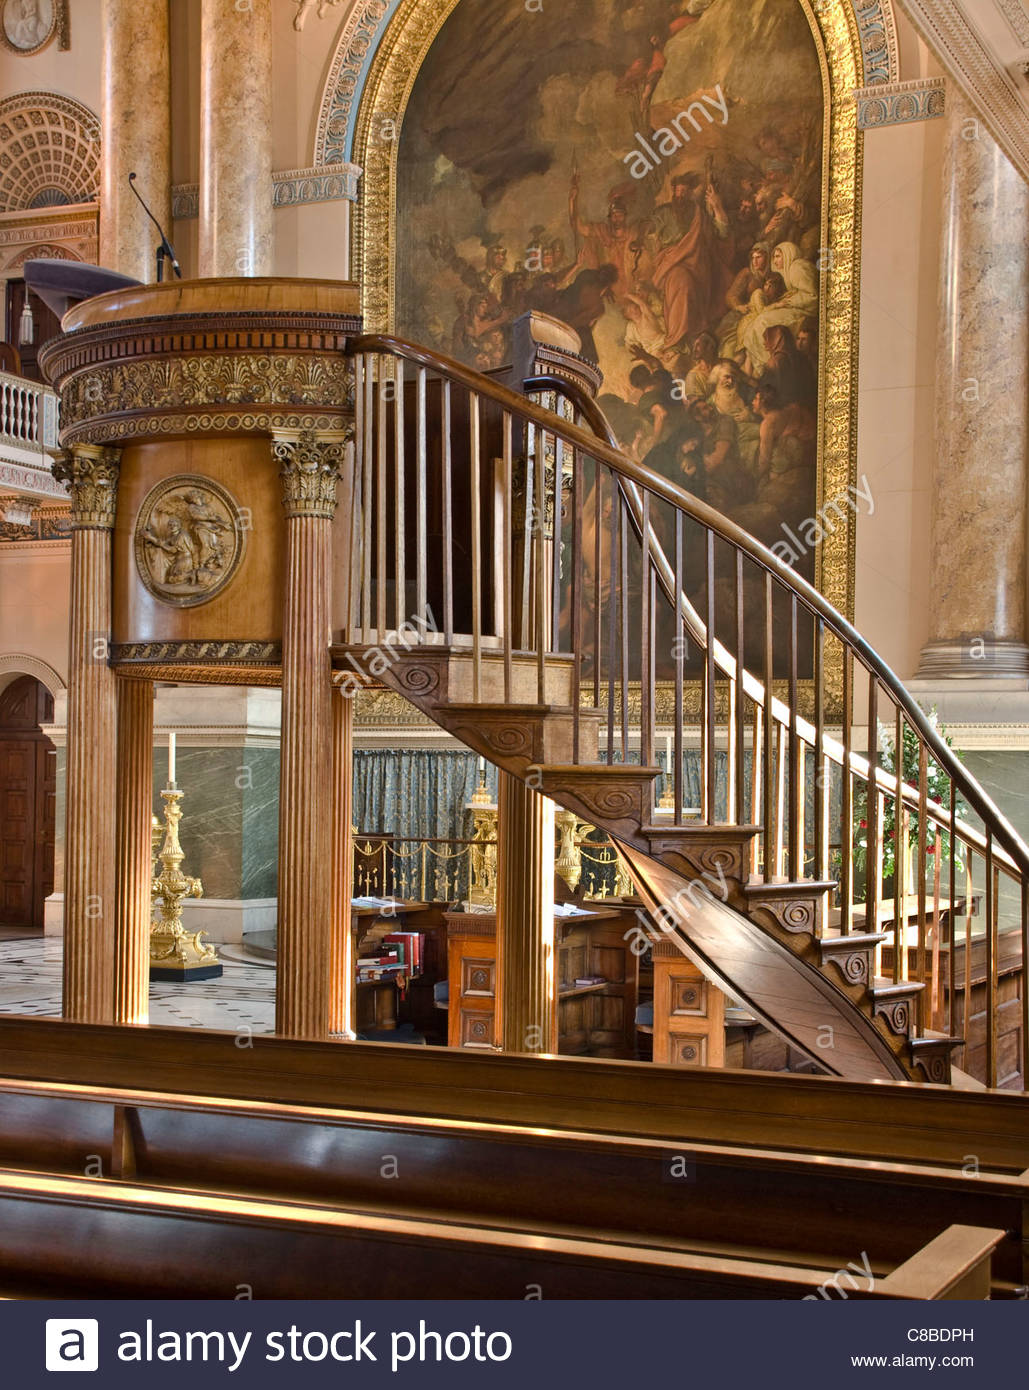 Interior of St Peter and Paul chapel Old Royal Naval College UNESCO world heritage site Greenwich London England - Stock Image